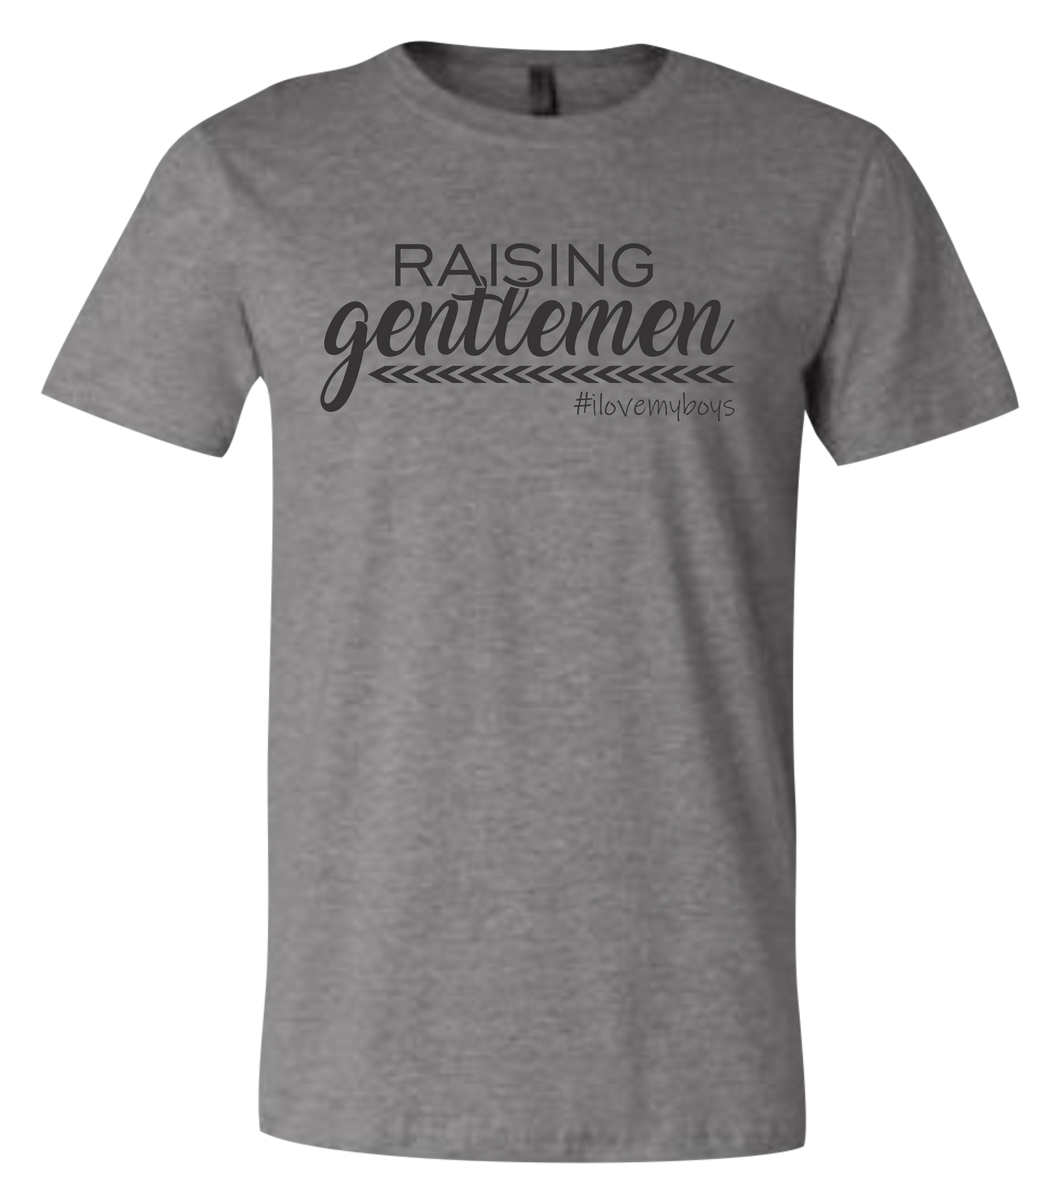 Raising Gentlemen Short Sleeve Graphic T-shirt